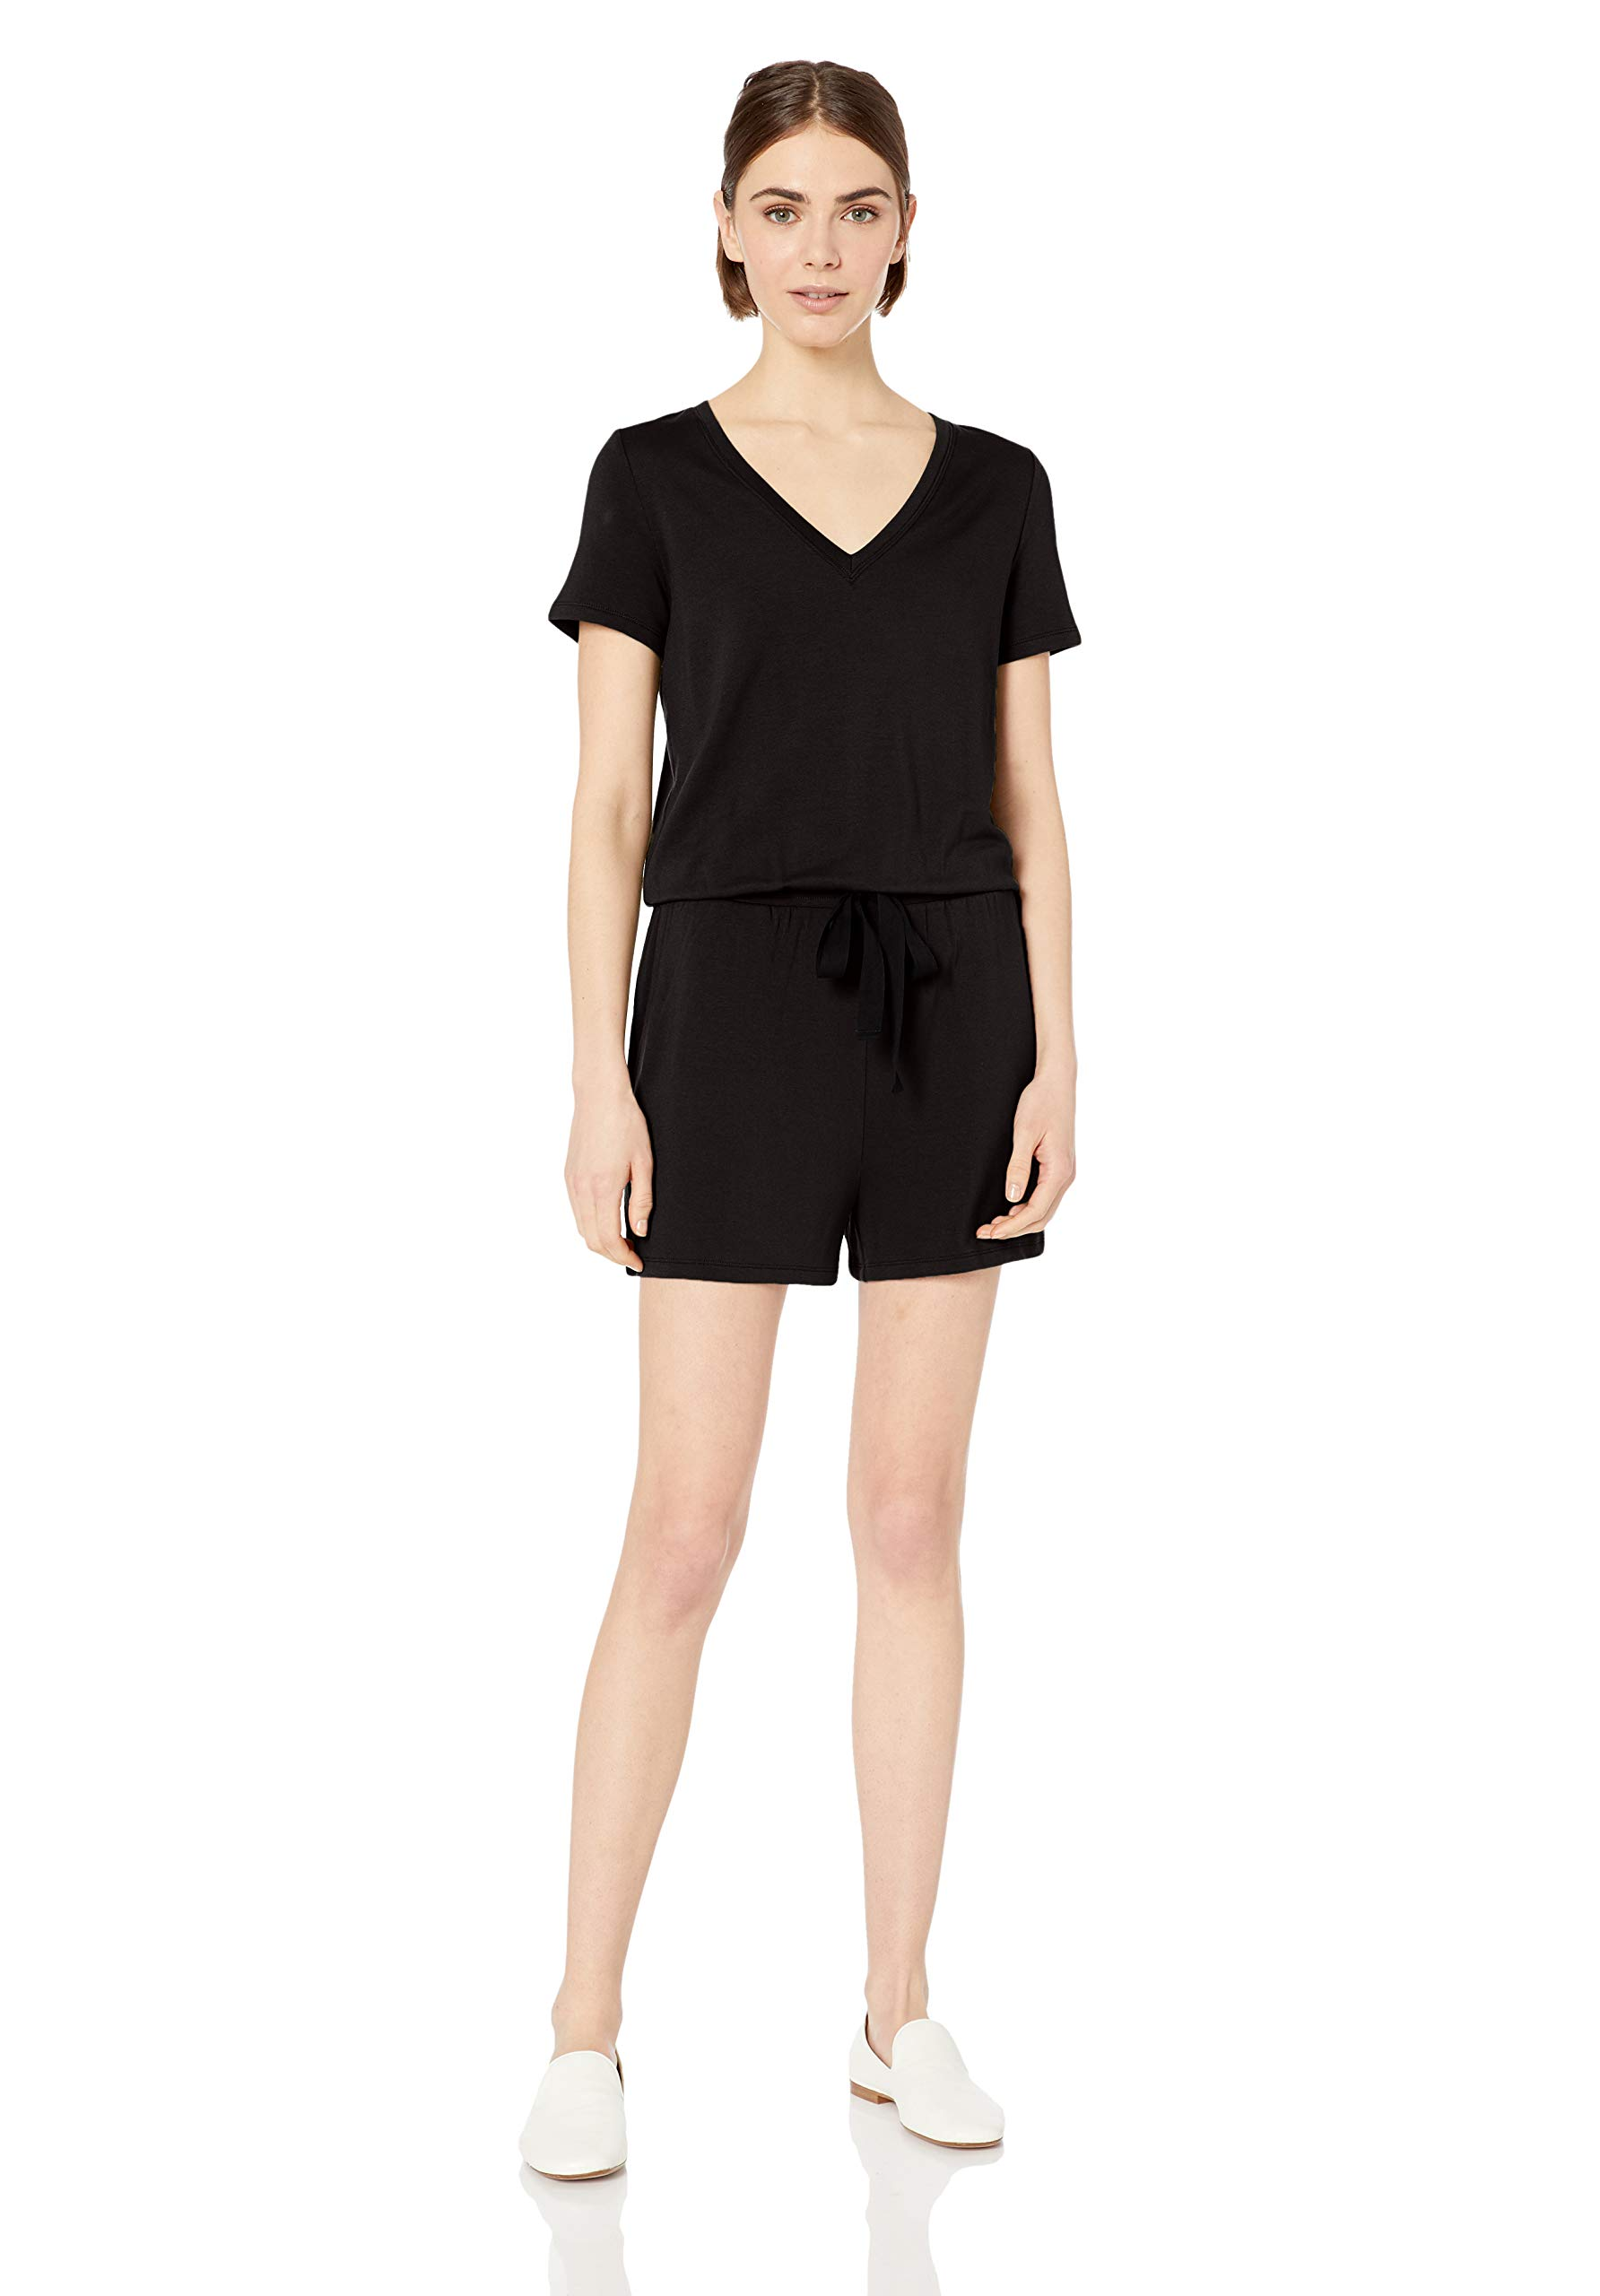 Amazon Brand - Daily Ritual Women's Supersoft Terry Short-Sleeve V-Neck Romper, Black, Medium by Daily Ritual